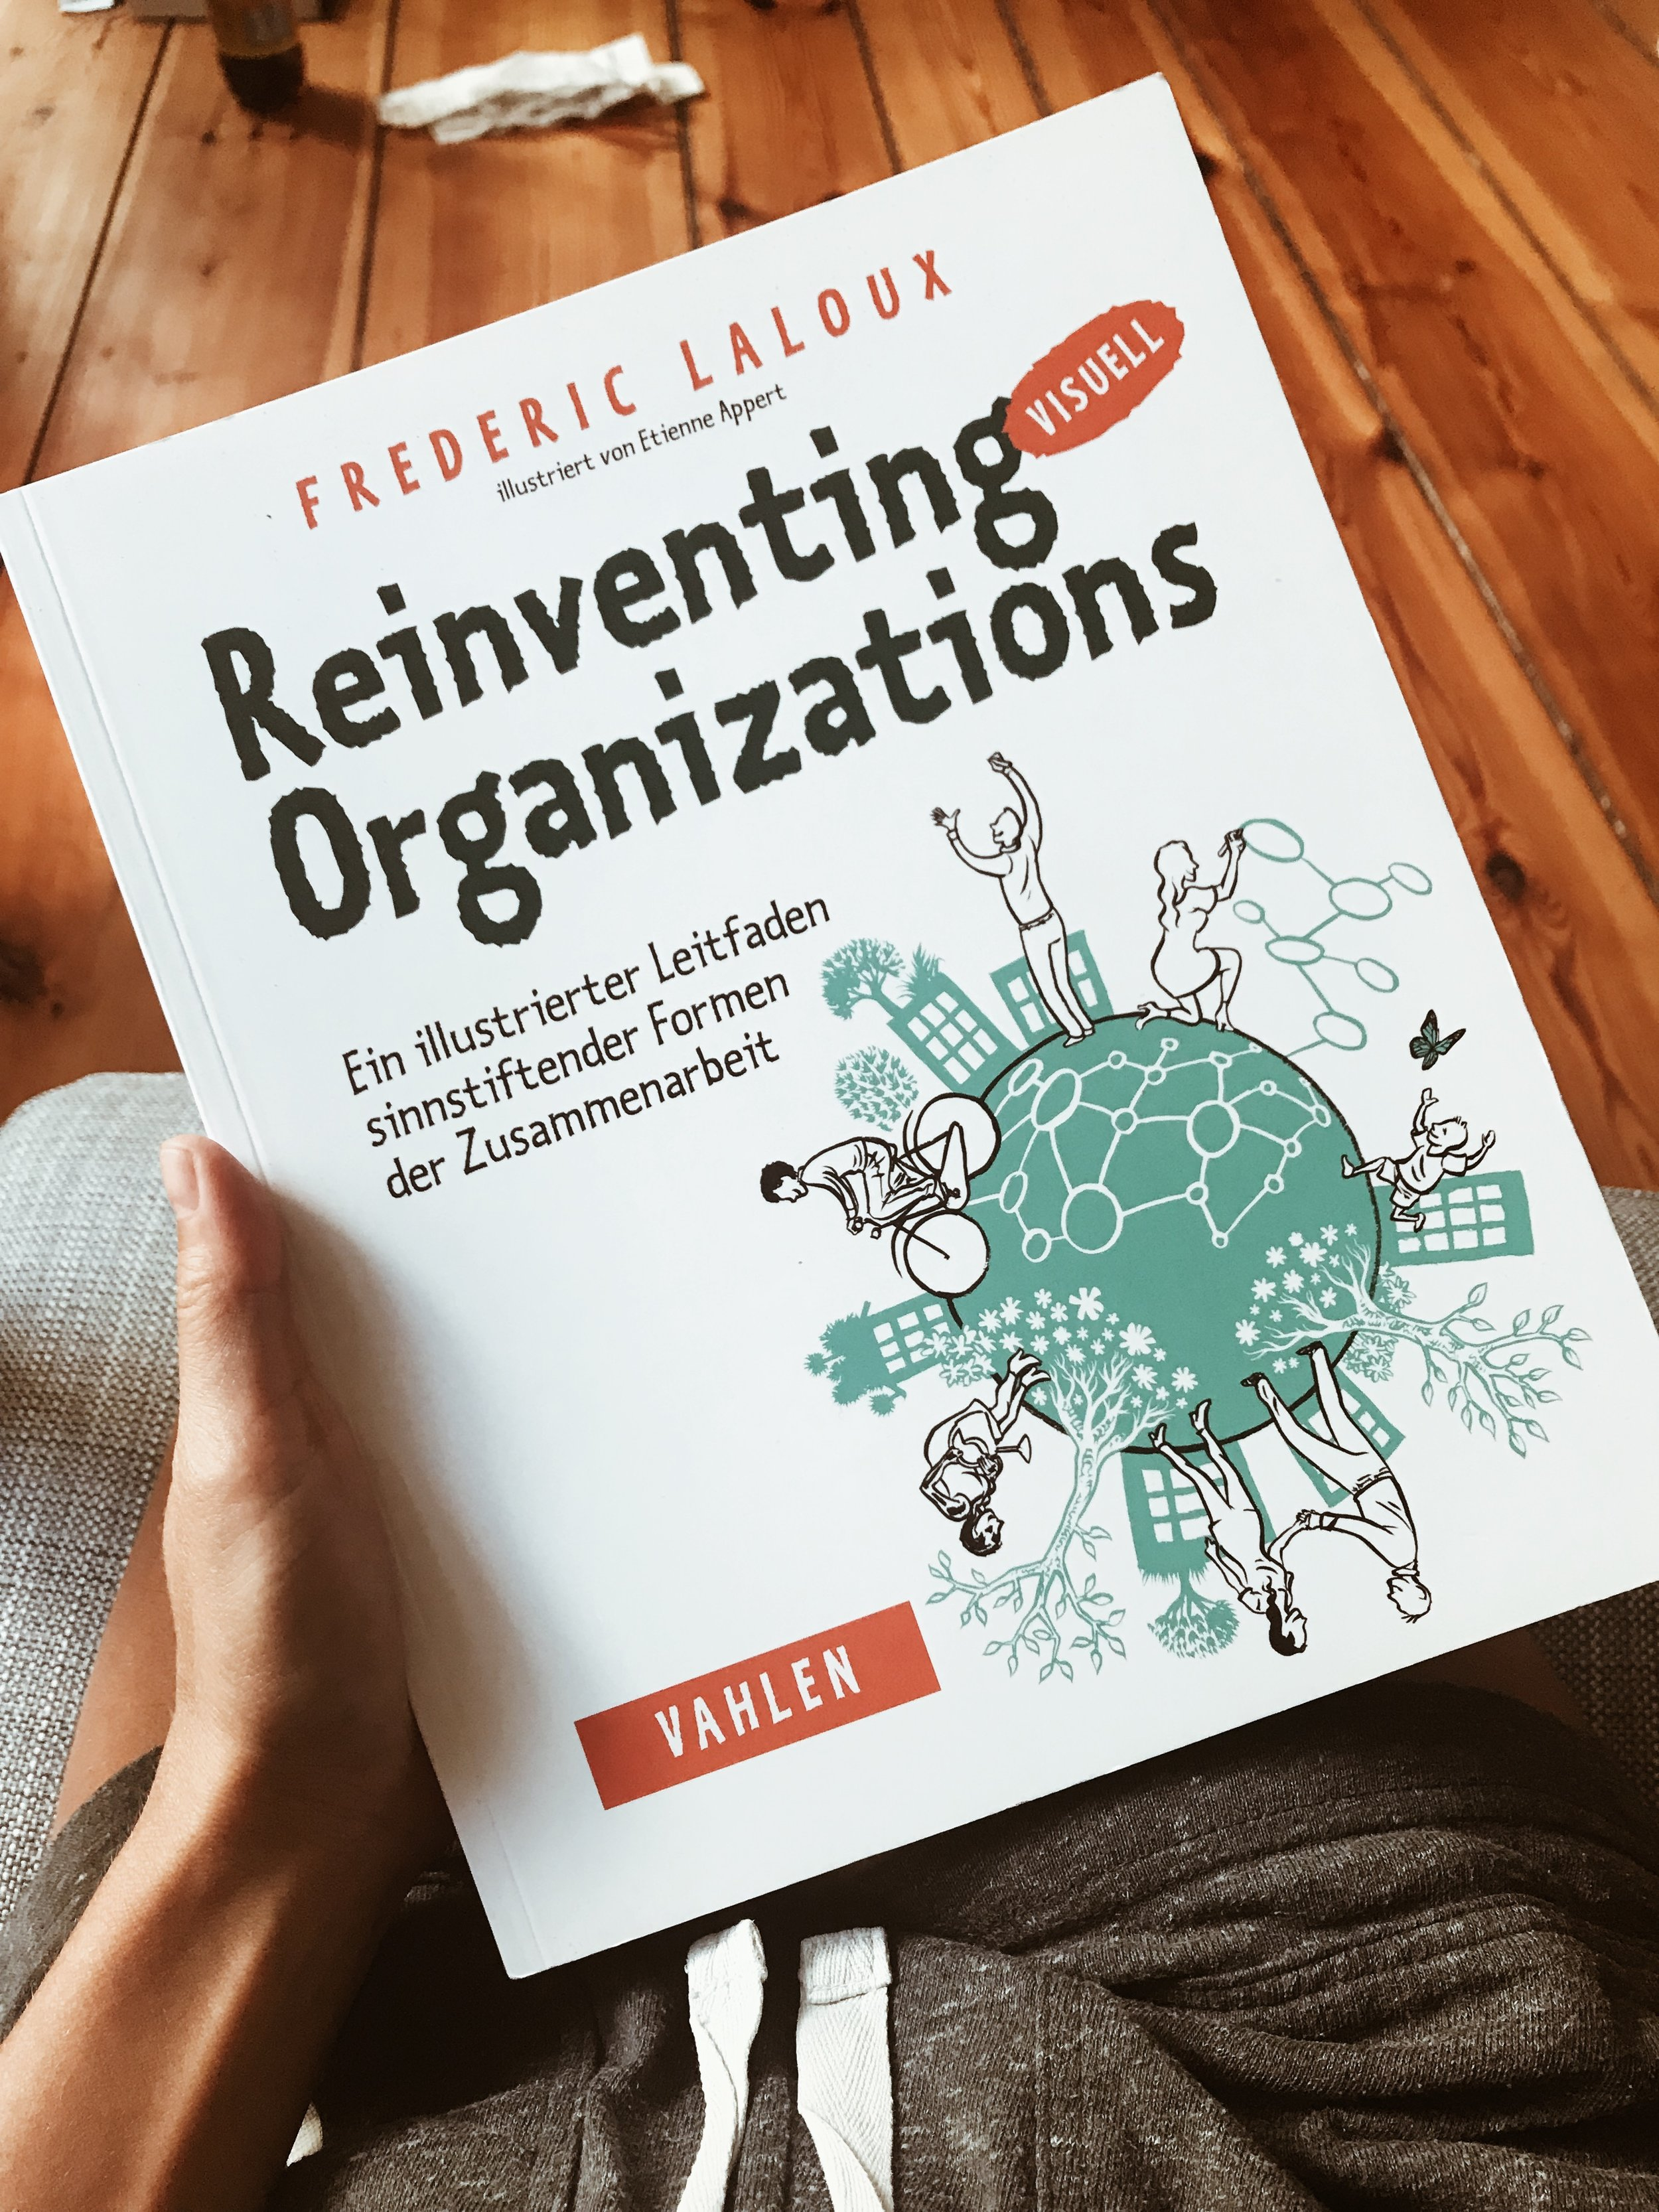 Reinventing Organizations - Link to Product